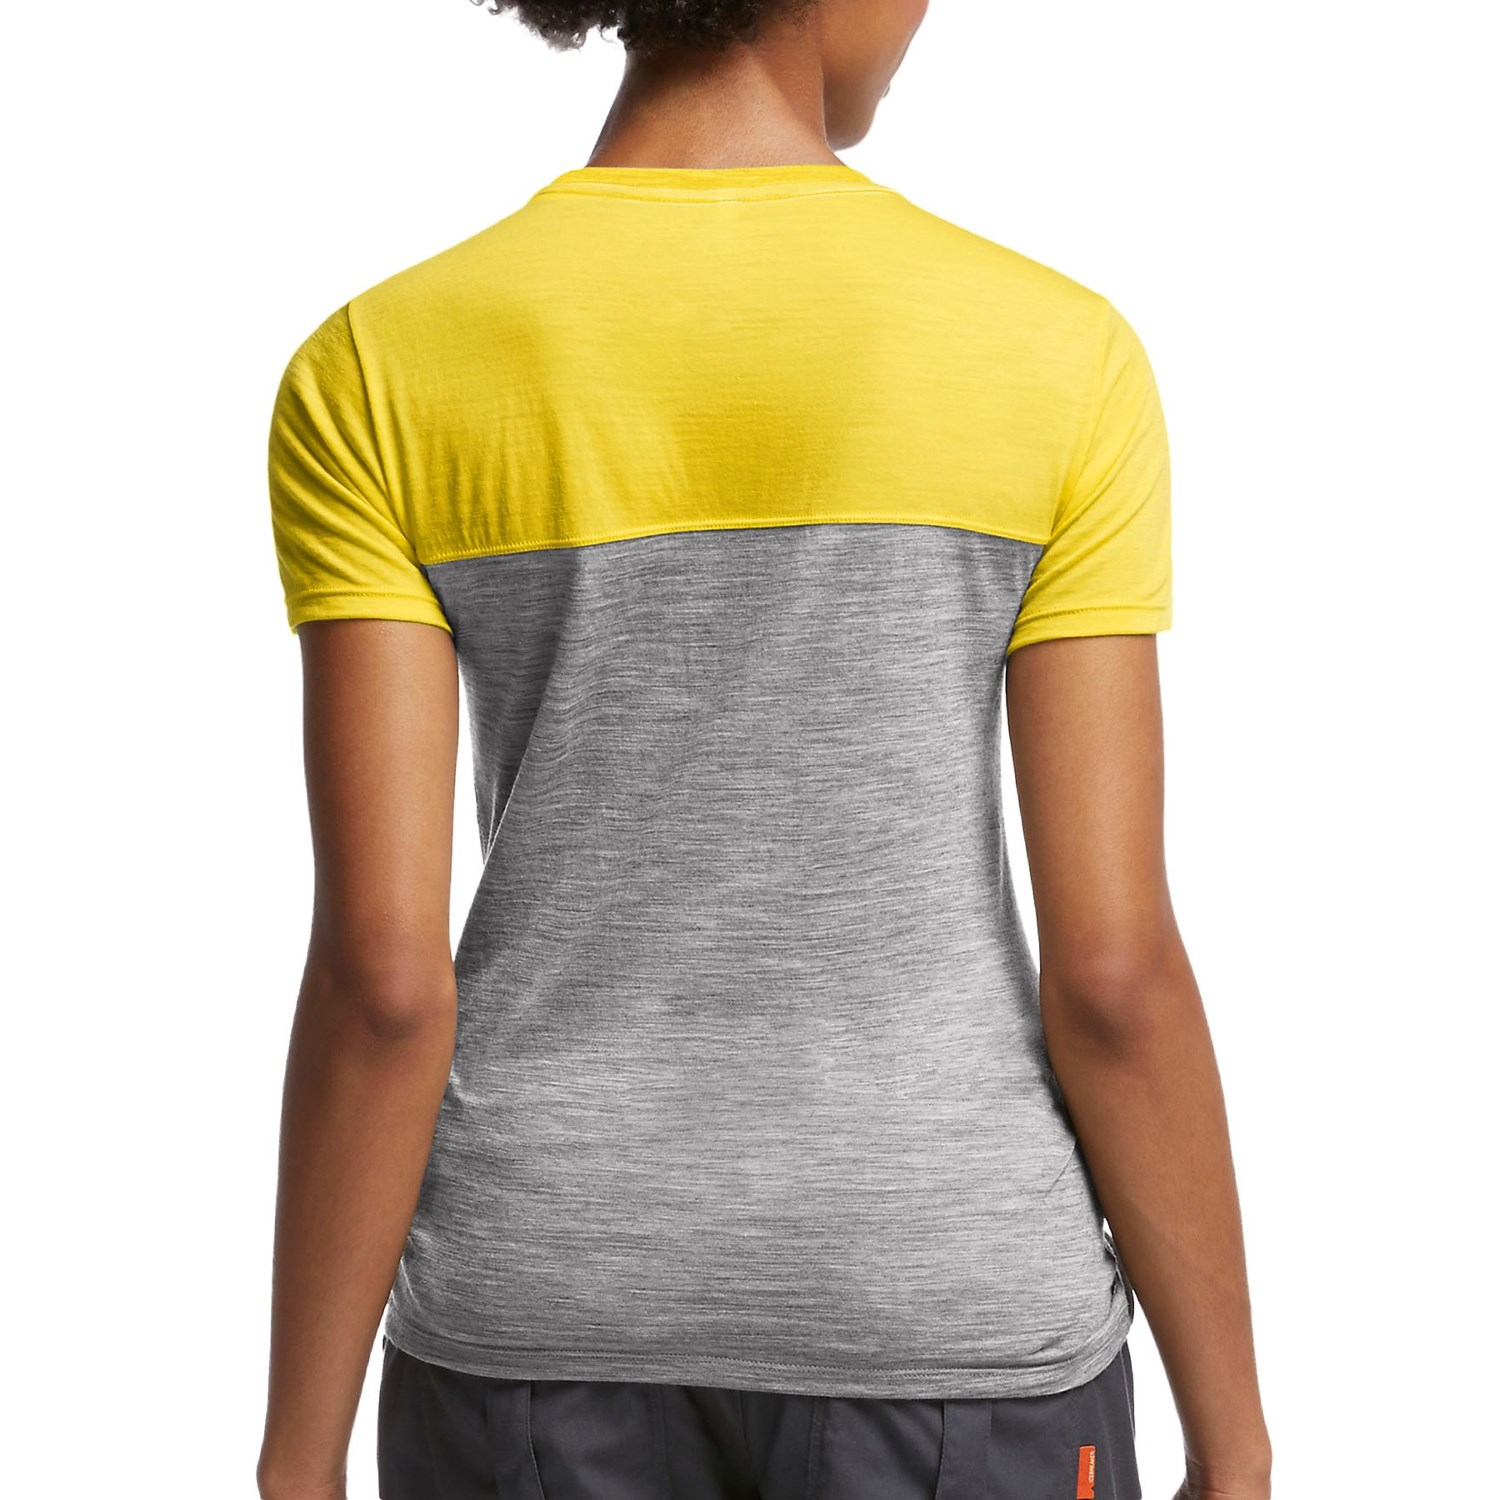 Icebreaker tech lite color block t shirt for women for One color t shirt